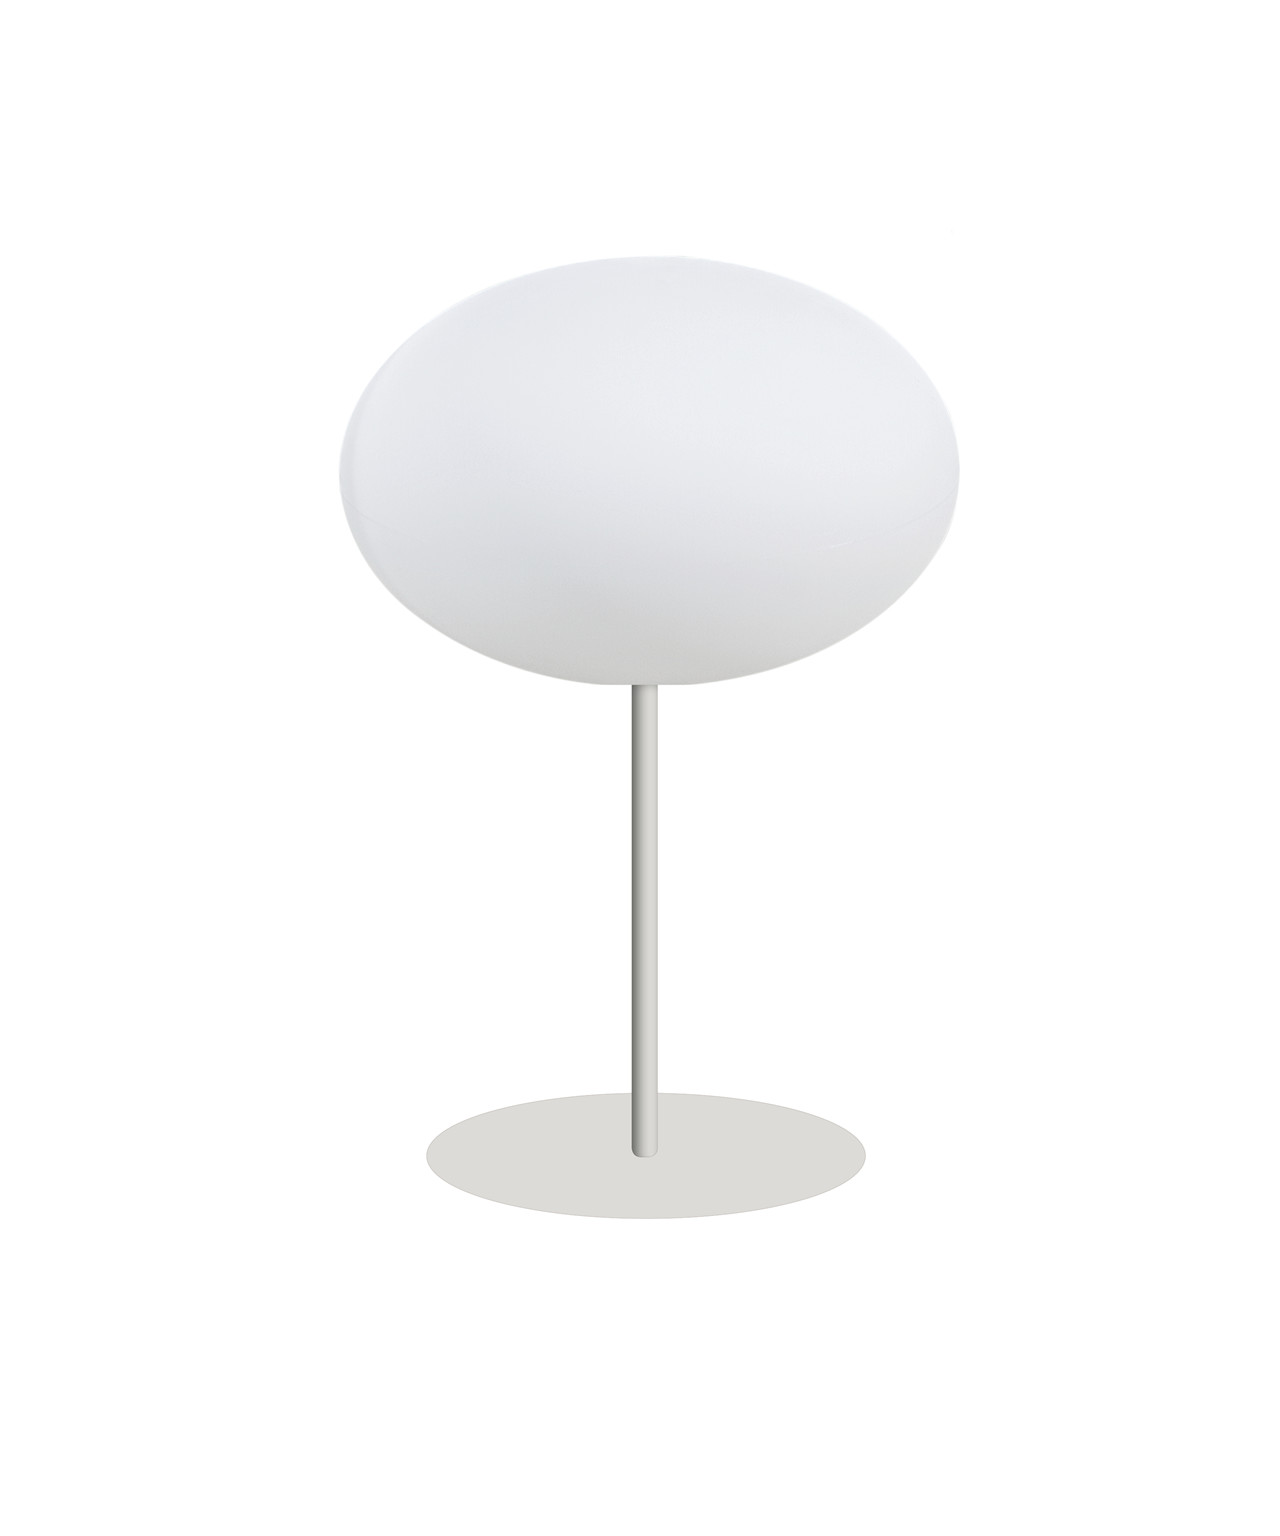 Eggy pin bordlampe